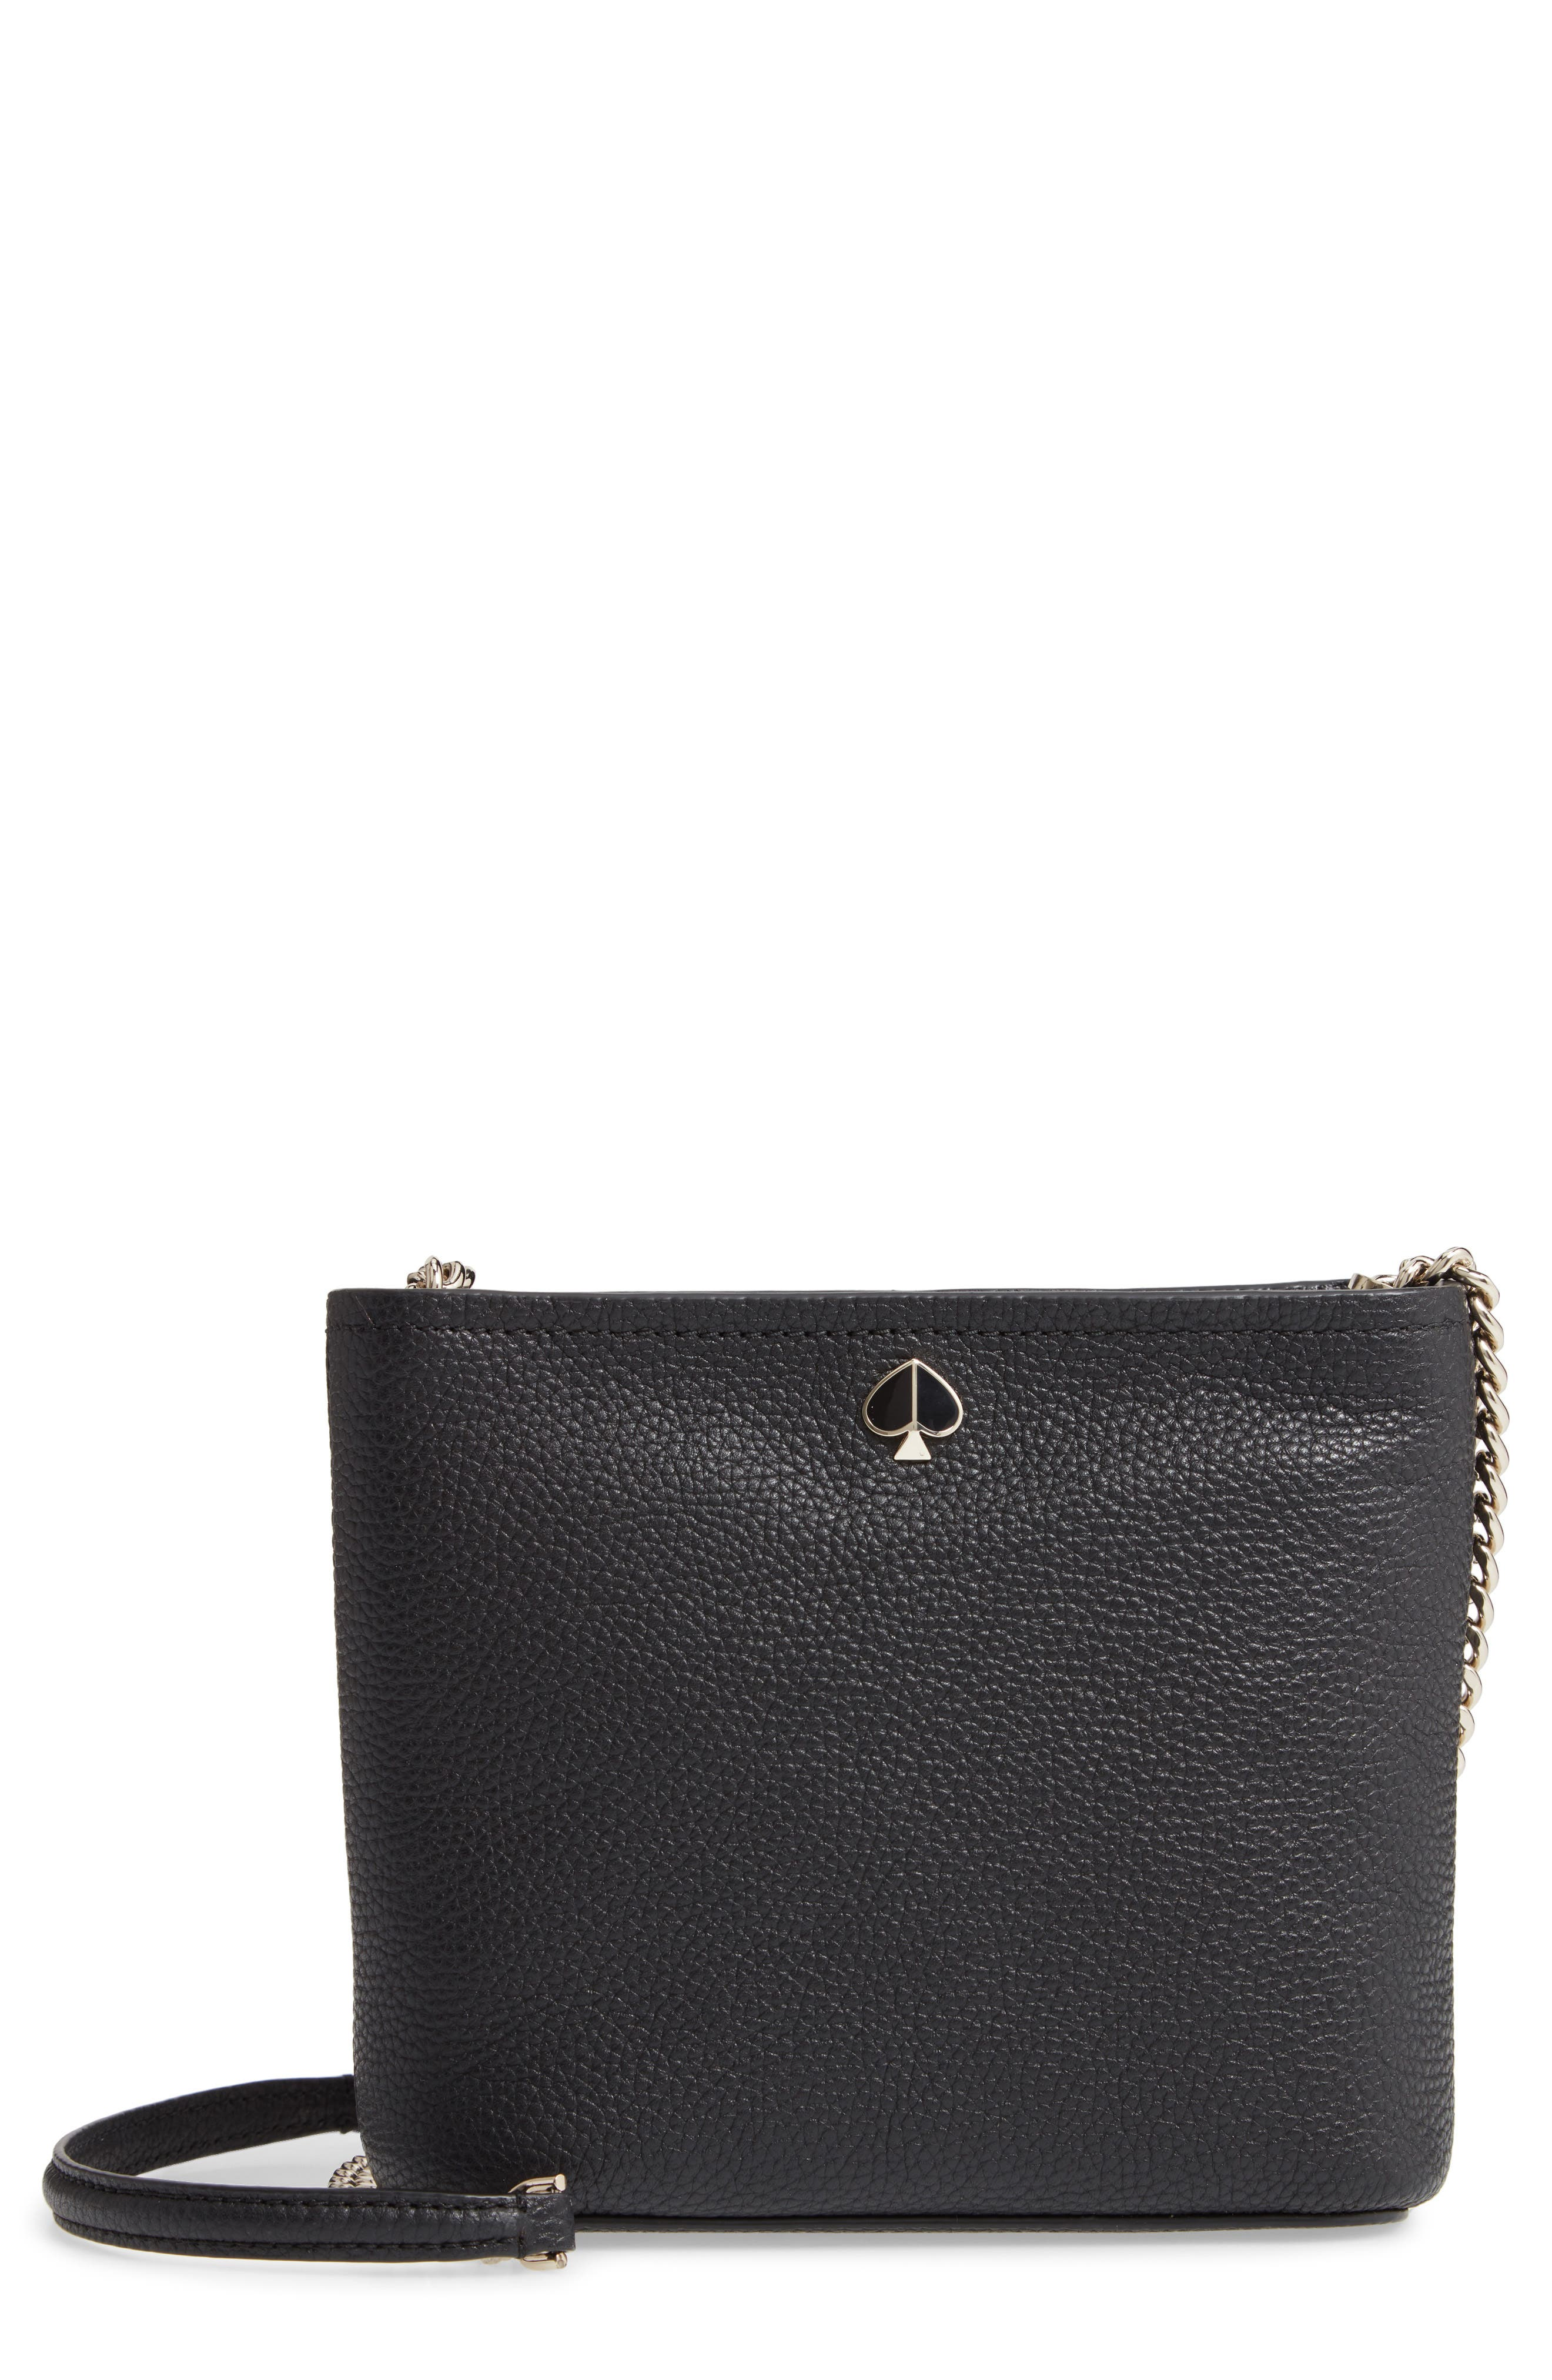 KATE SPADE NEW YORK, small polly leather crossbody bag, Main thumbnail 1, color, BLACK